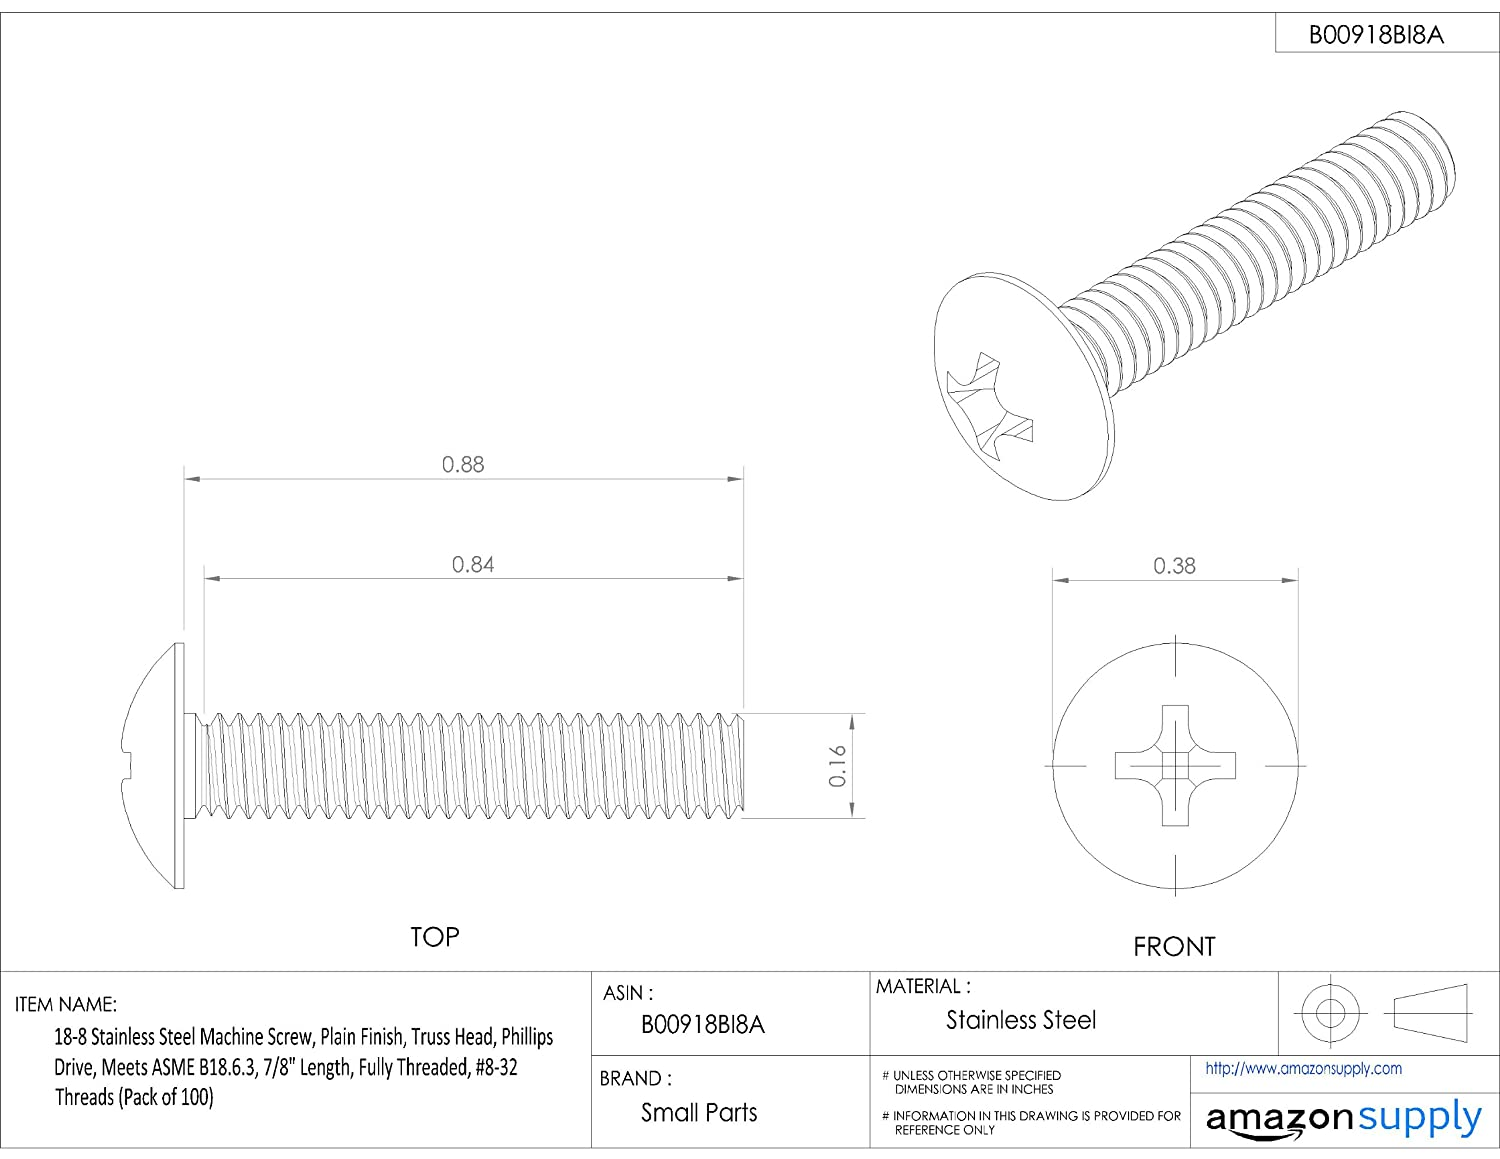 Fully Threaded 1//4 Length Pack of 100 18-8 Stainless Steel Machine Screw Plain Finish #8-32 UNC Threads Meets ASME B18.6.3 Truss Head 1//4 Length Small Parts 774048 Phillips Drive